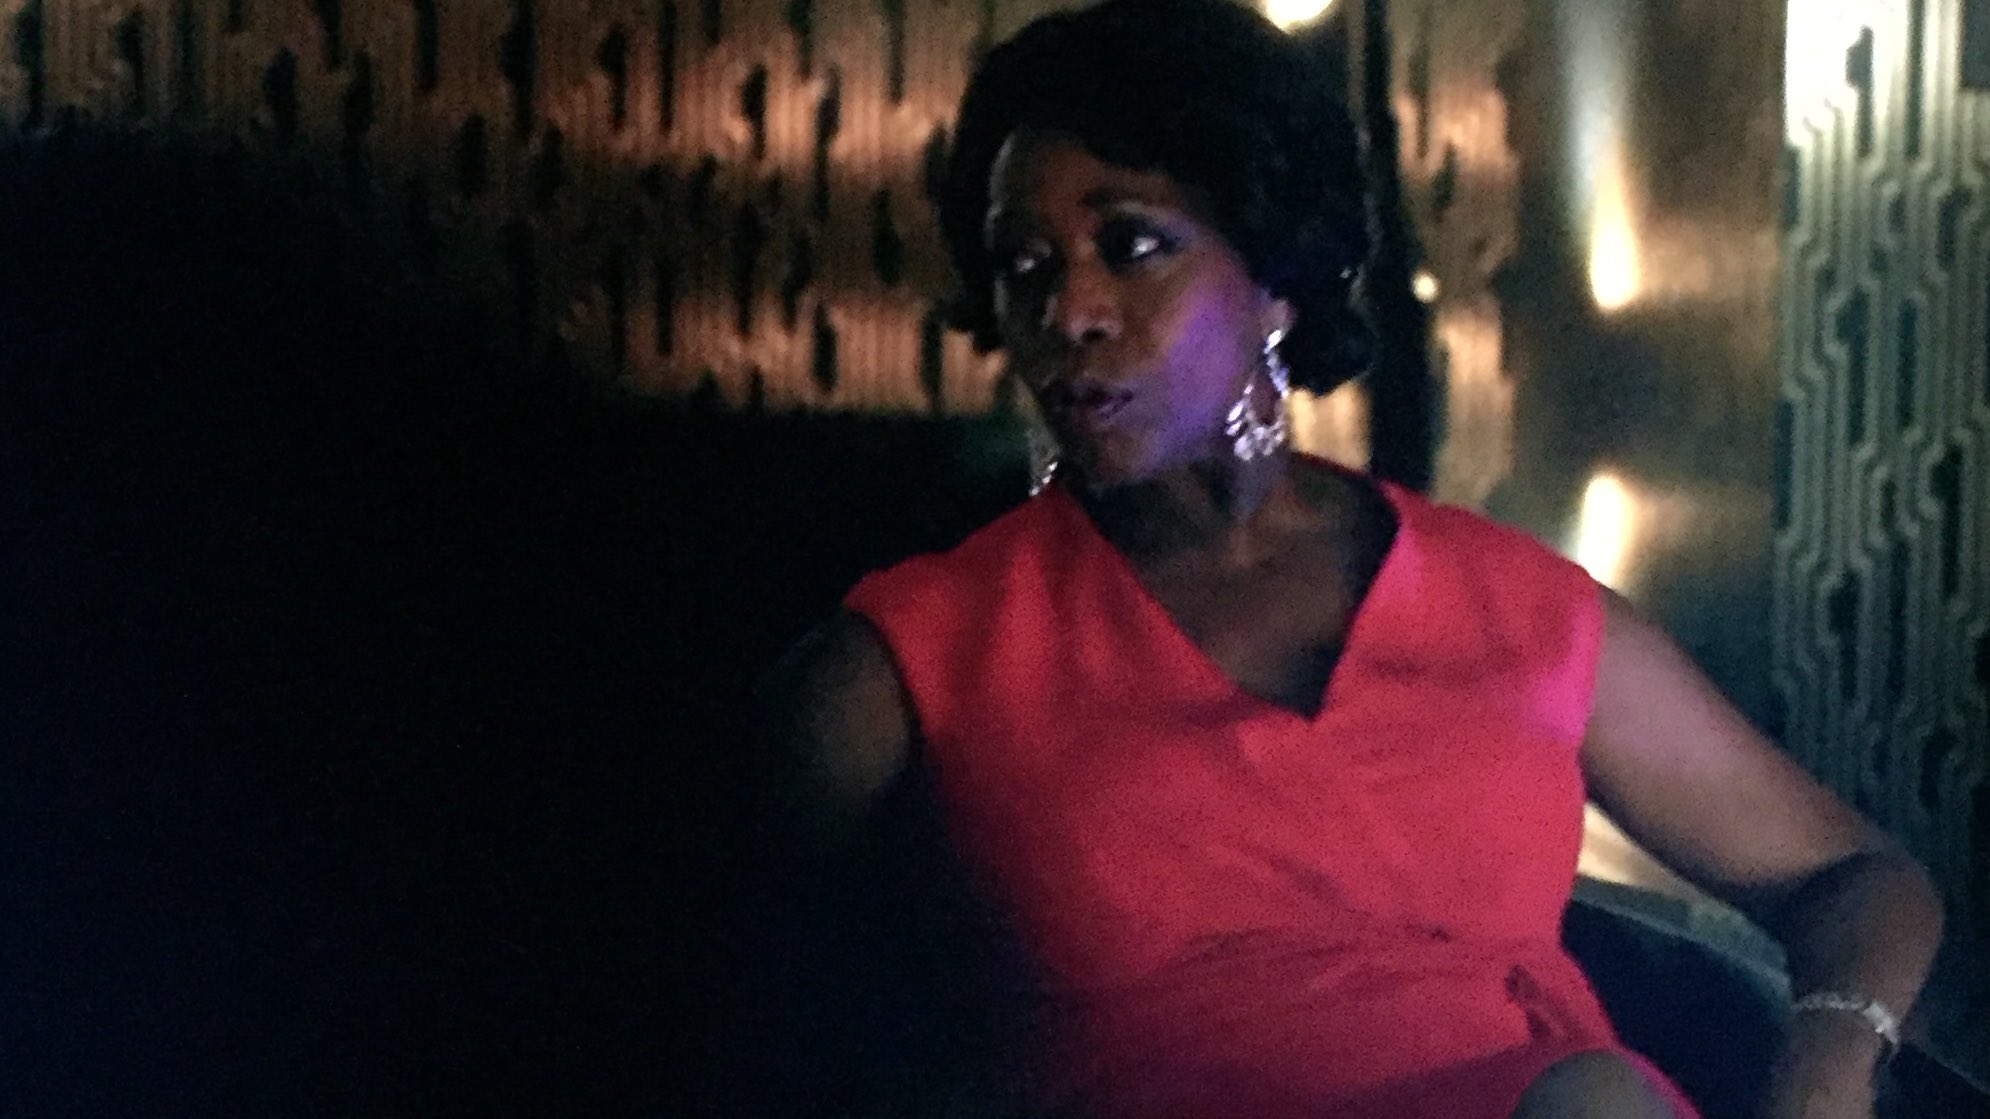 Has ALFRE WOODARD ever been this glamorous in media? Don't think so #LukeCage S1:E1 https://t.co/uRDOdKQrwq